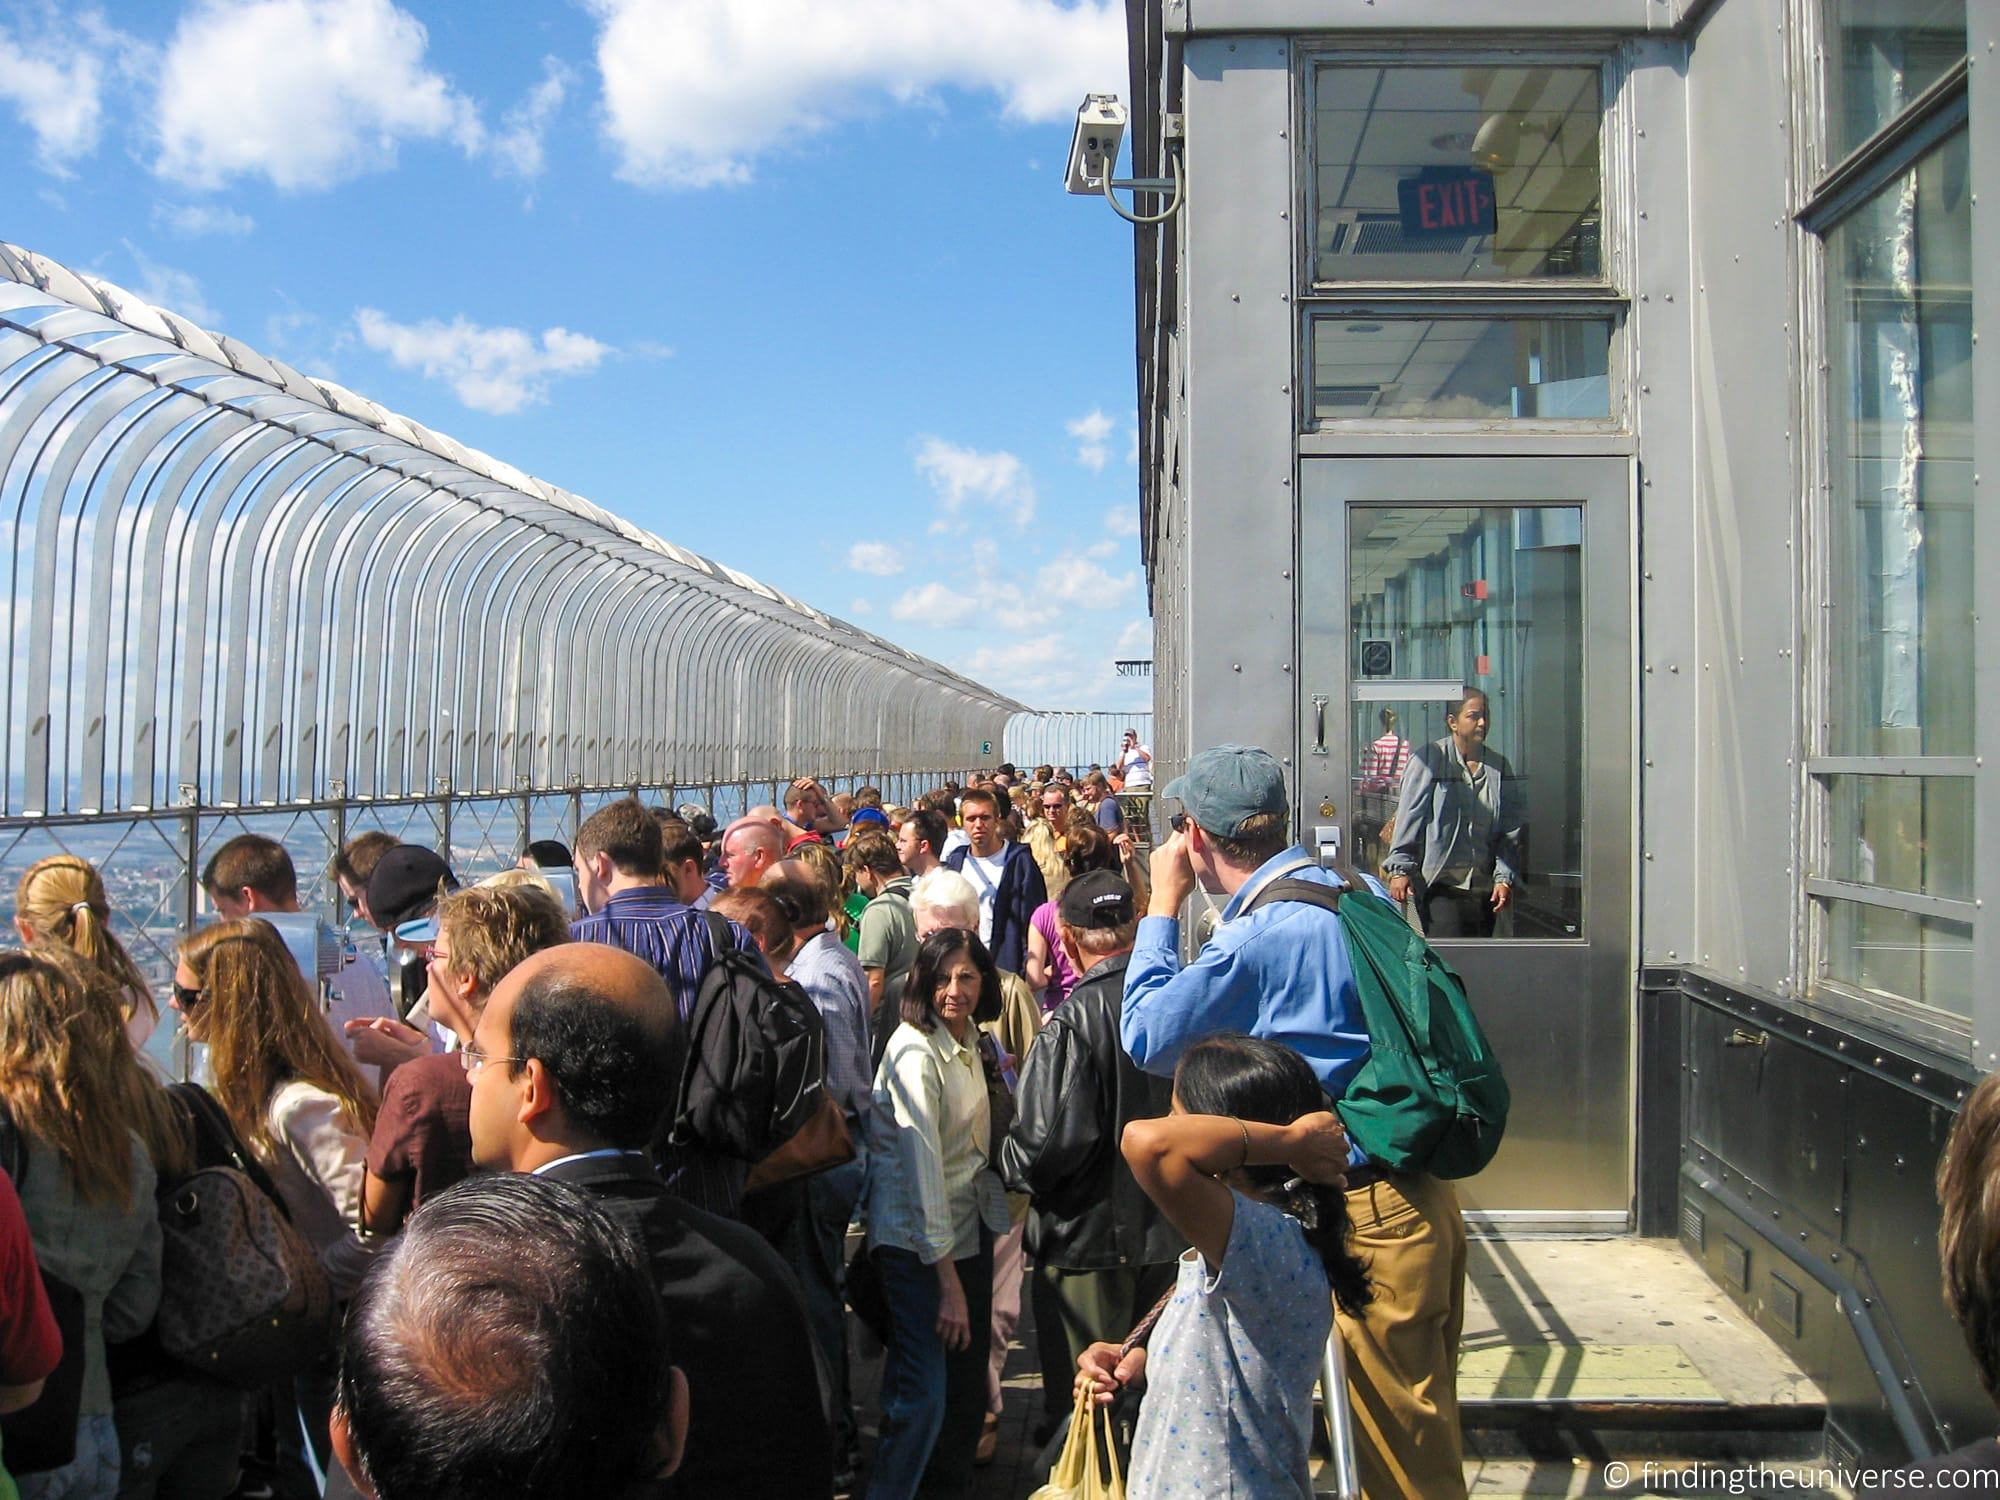 Crowds on observation deck at Empire State Building